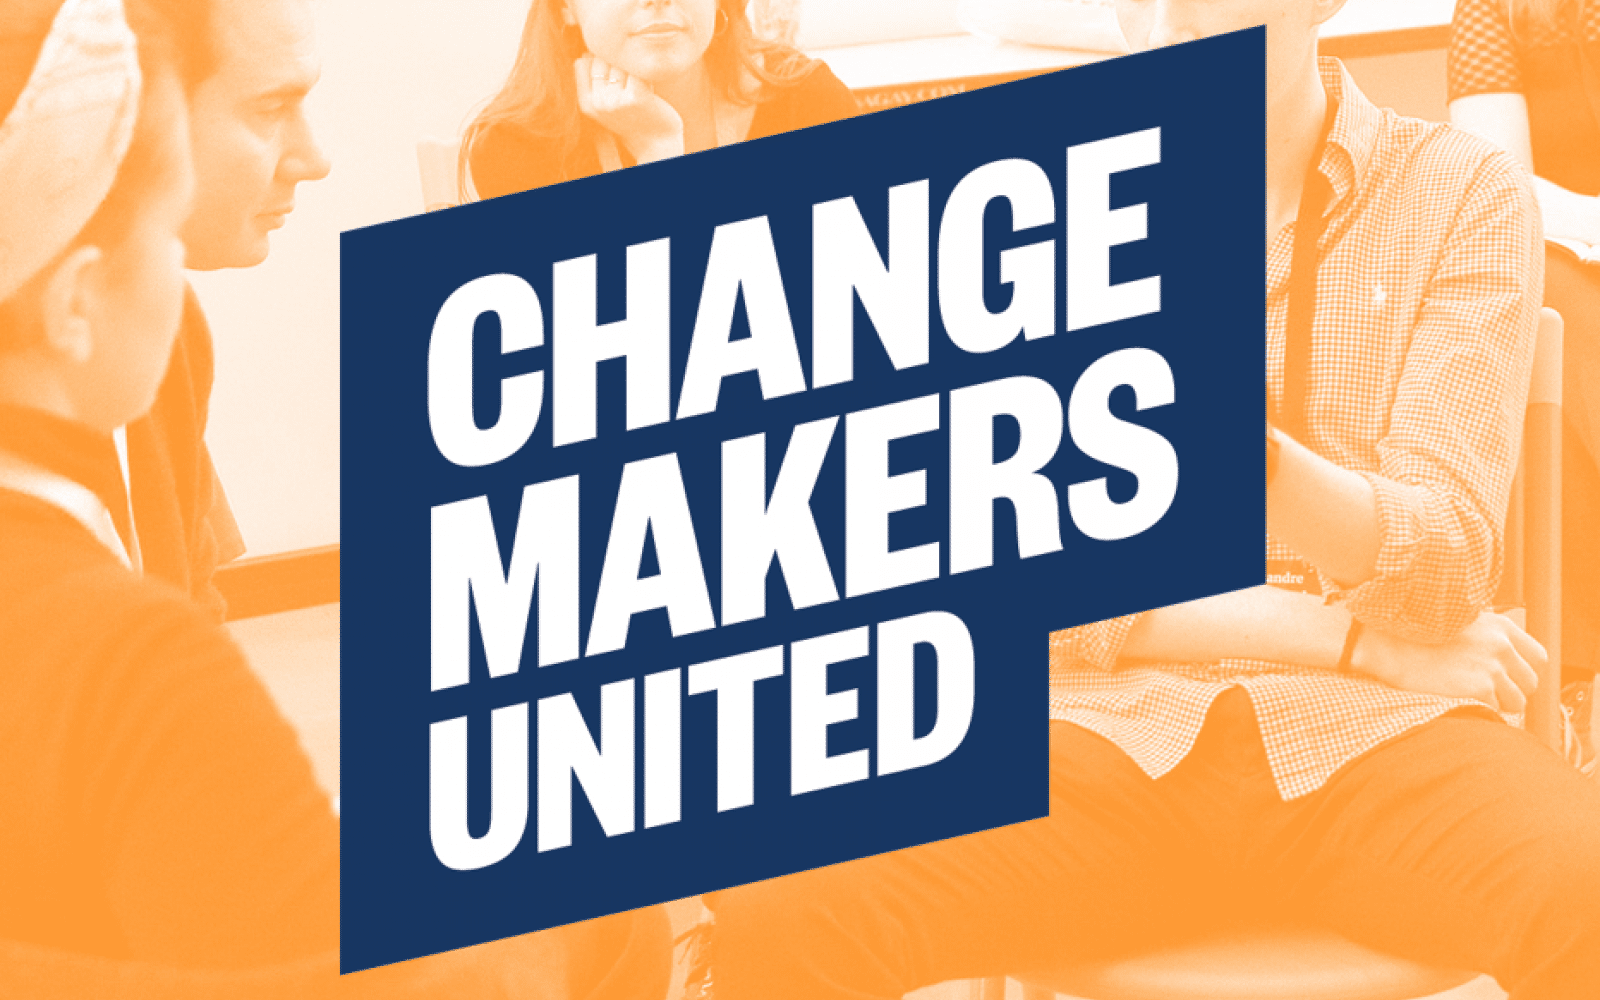 changemajers united orange blue